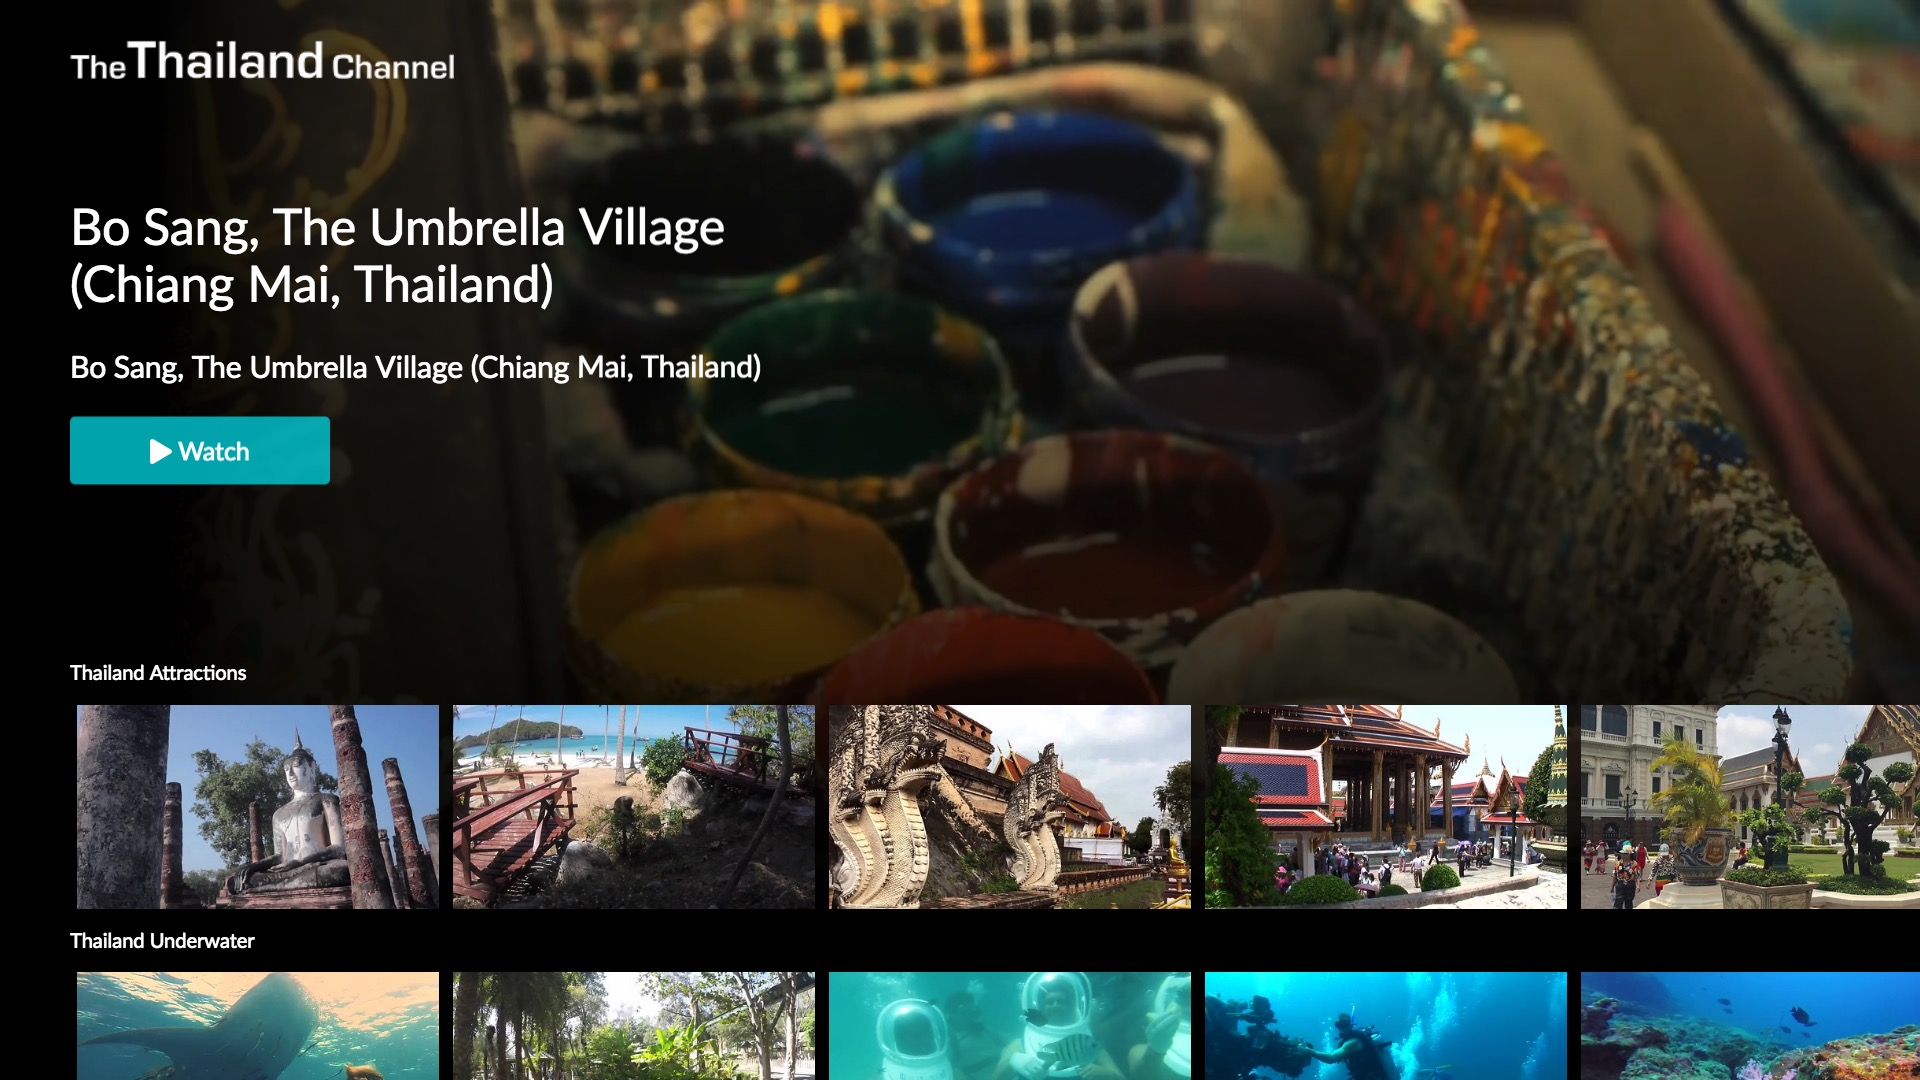 The Thailand Channel Screenshot 001